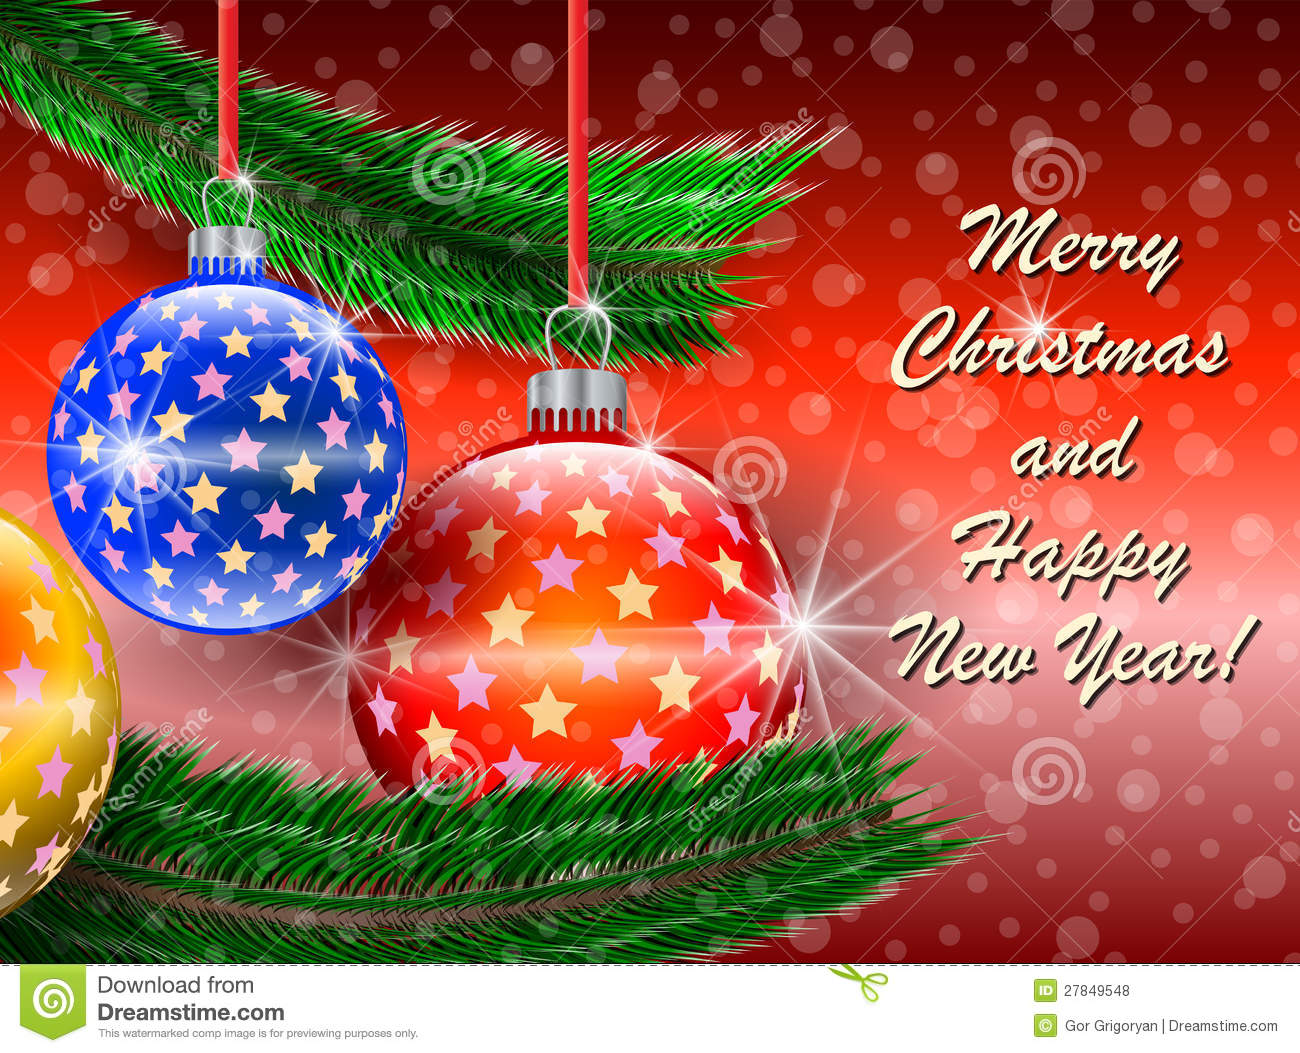 Free christmas and new year greetings acurnamedia free christmas and new year greetings m4hsunfo